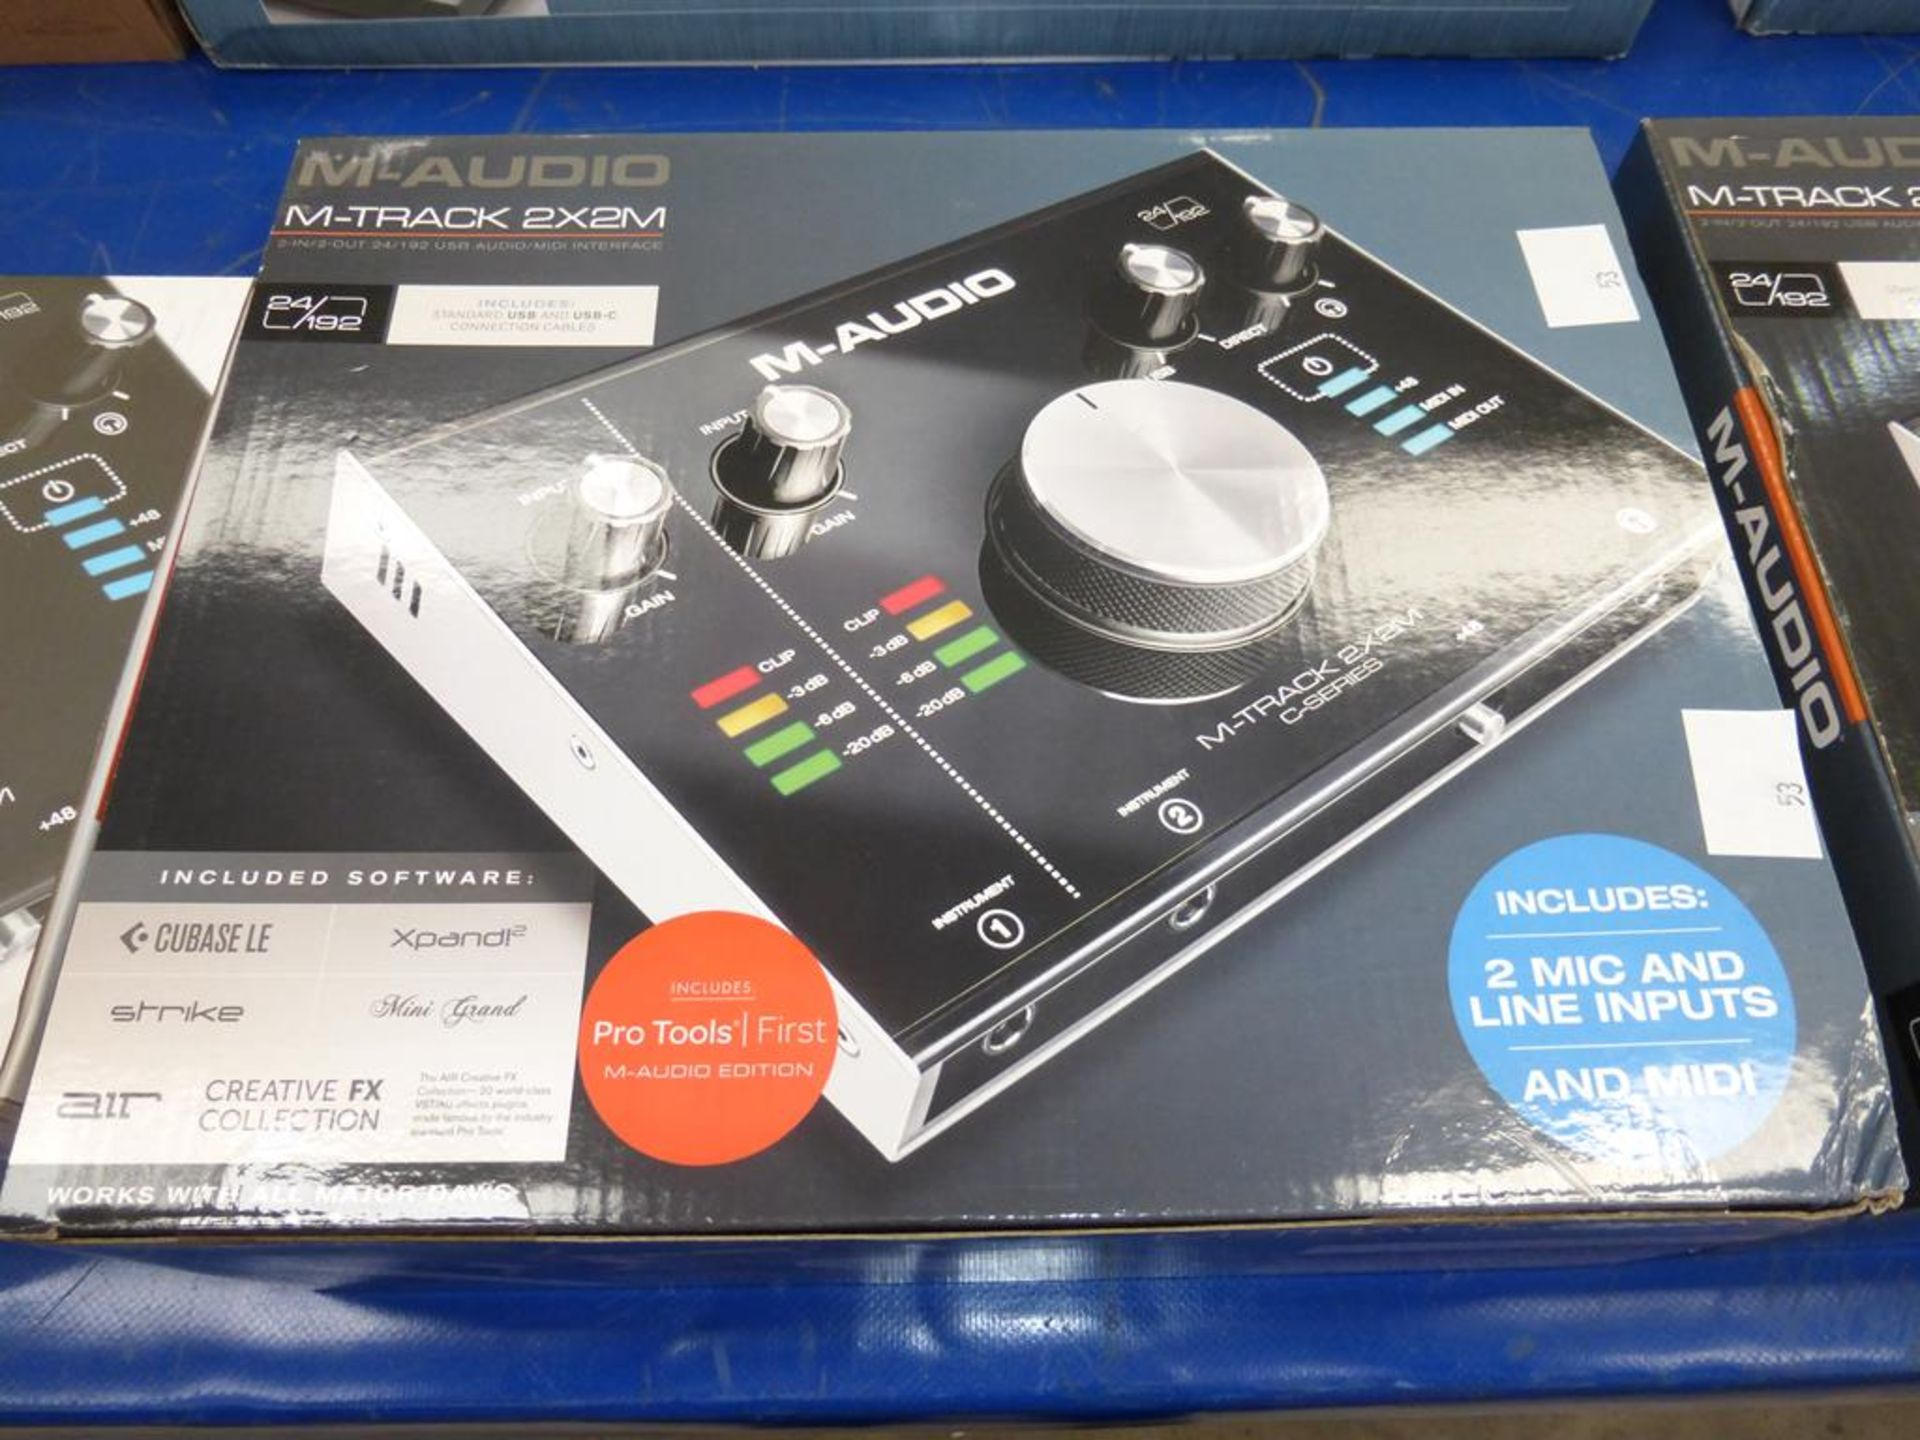 Lot 53 - * An M-Audio M-Track 2 X 2m Audio/Midi Interface with software (RRP £99)